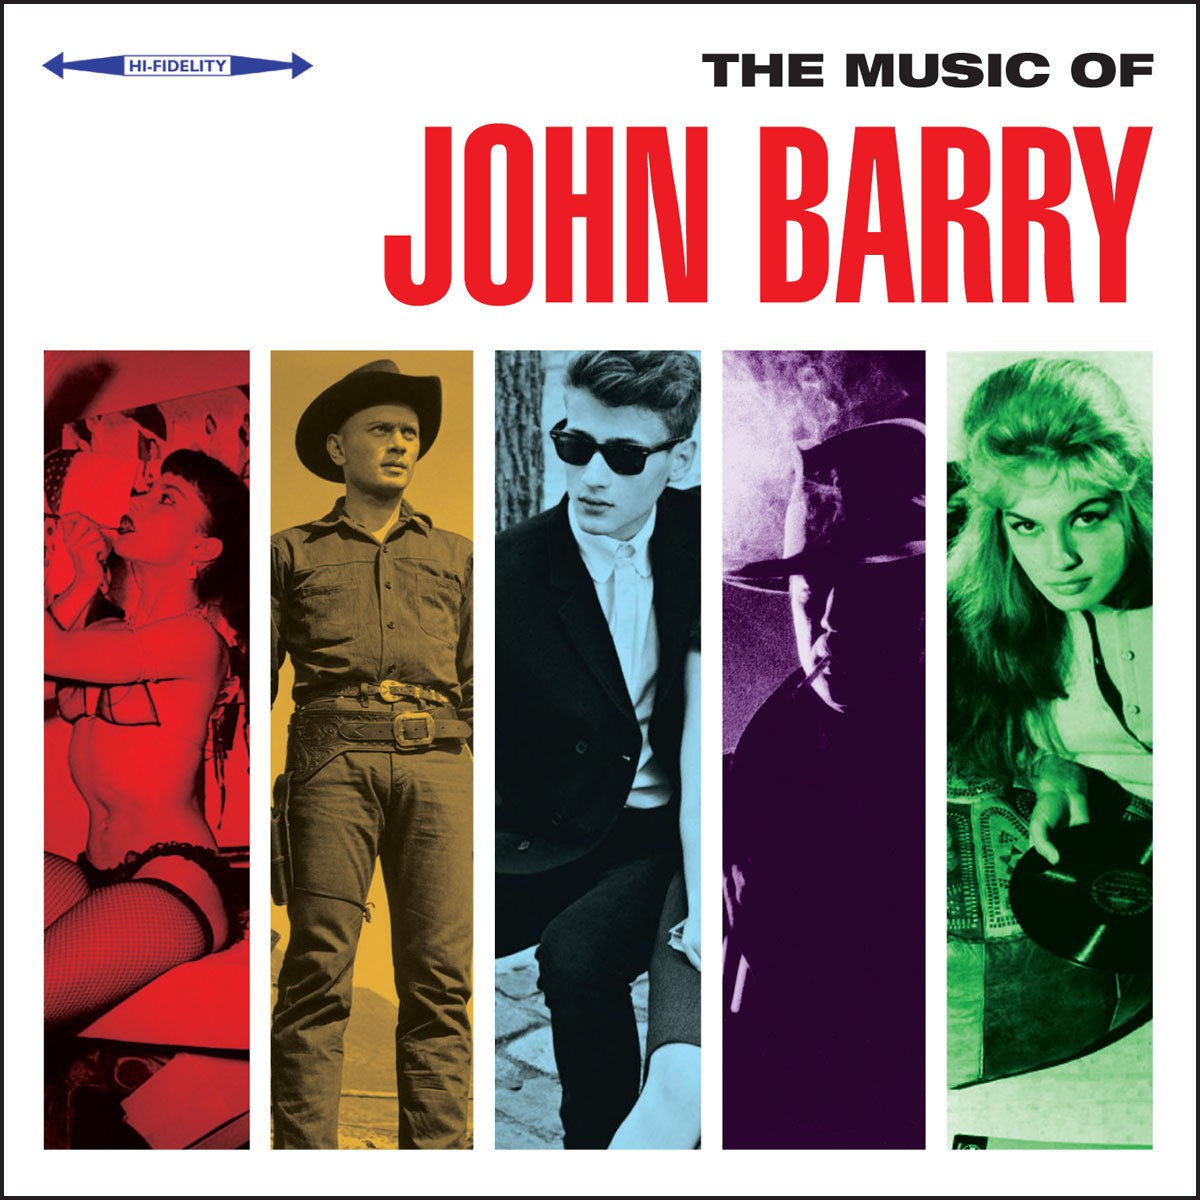 JOHN BARRY: THE MUSIC OF JOHN BARRY (2 CDs)